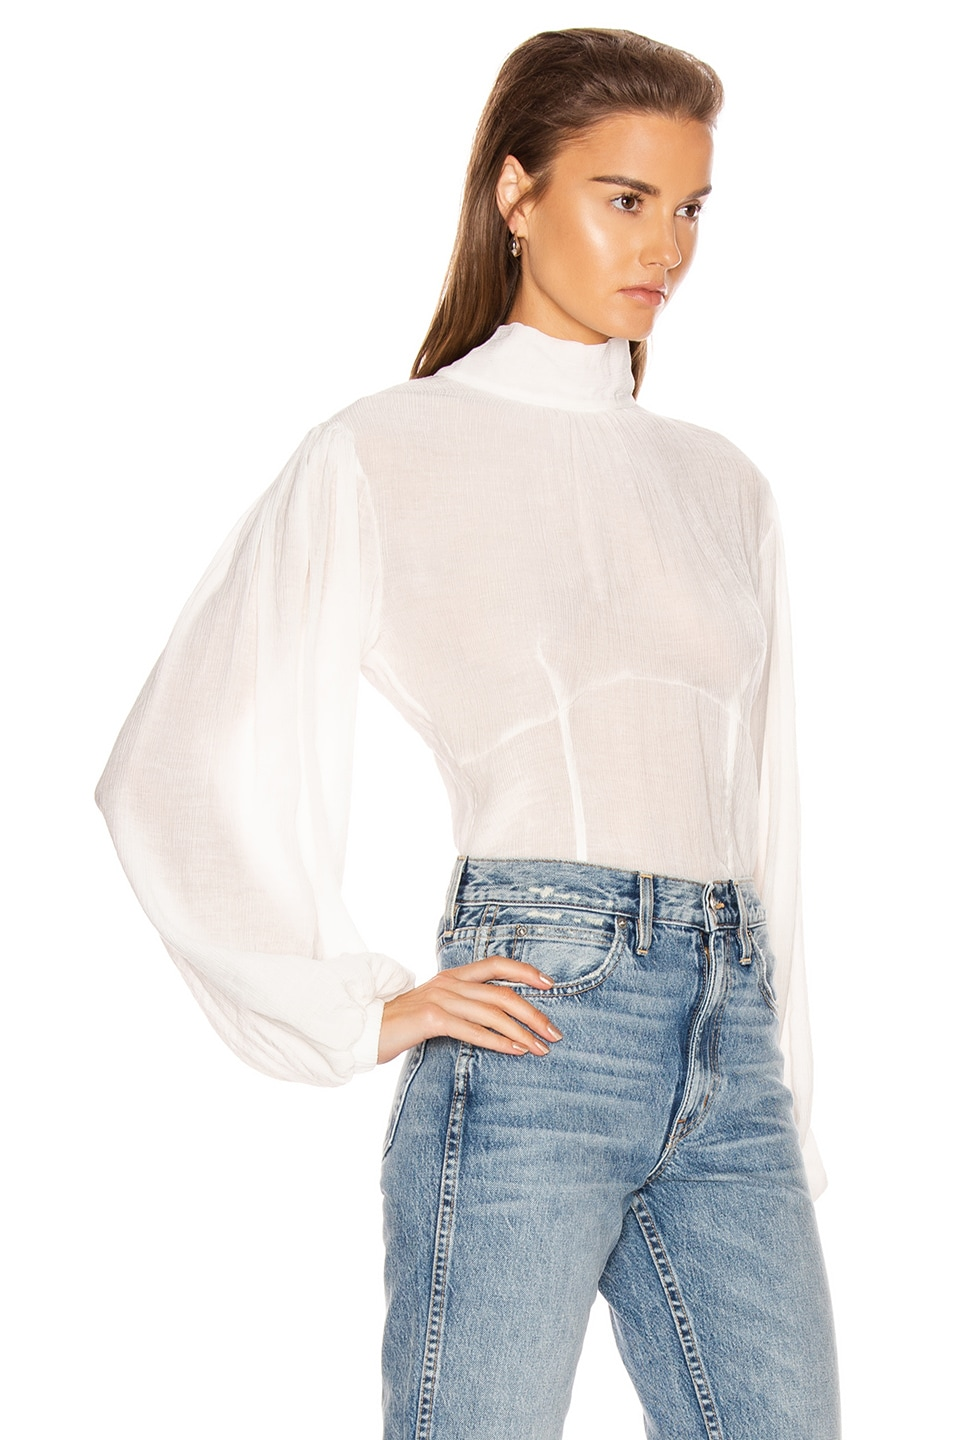 Image 3 of The Range Vapor Voile Corset Volume Sleeve Top in White